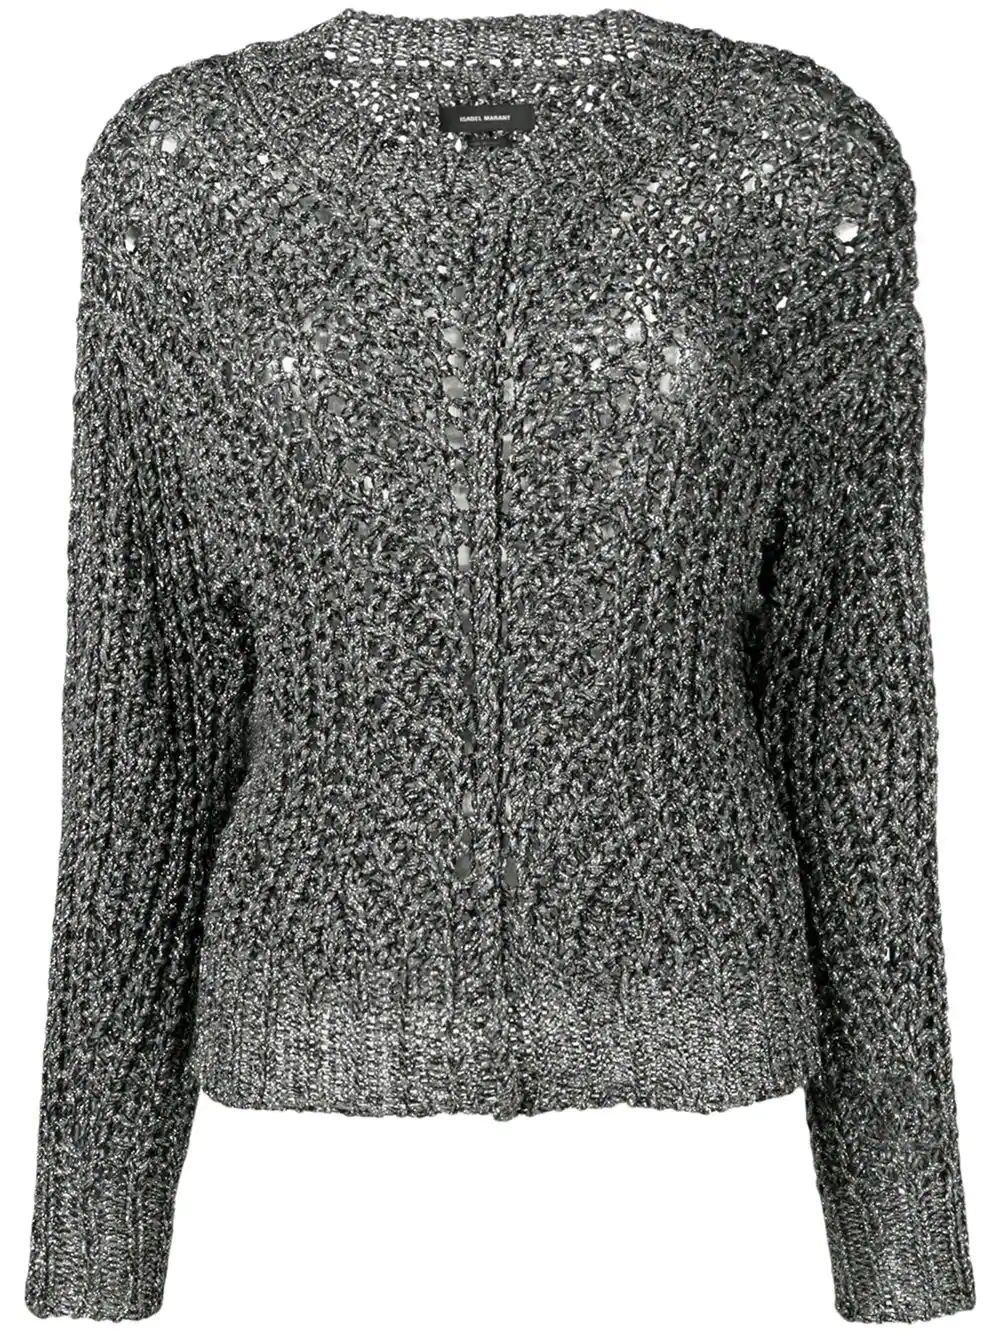 dd0c0ca03bd6a7 Isabel Marant 'Mays' Pullover - Rosa In Pink | ModeSens